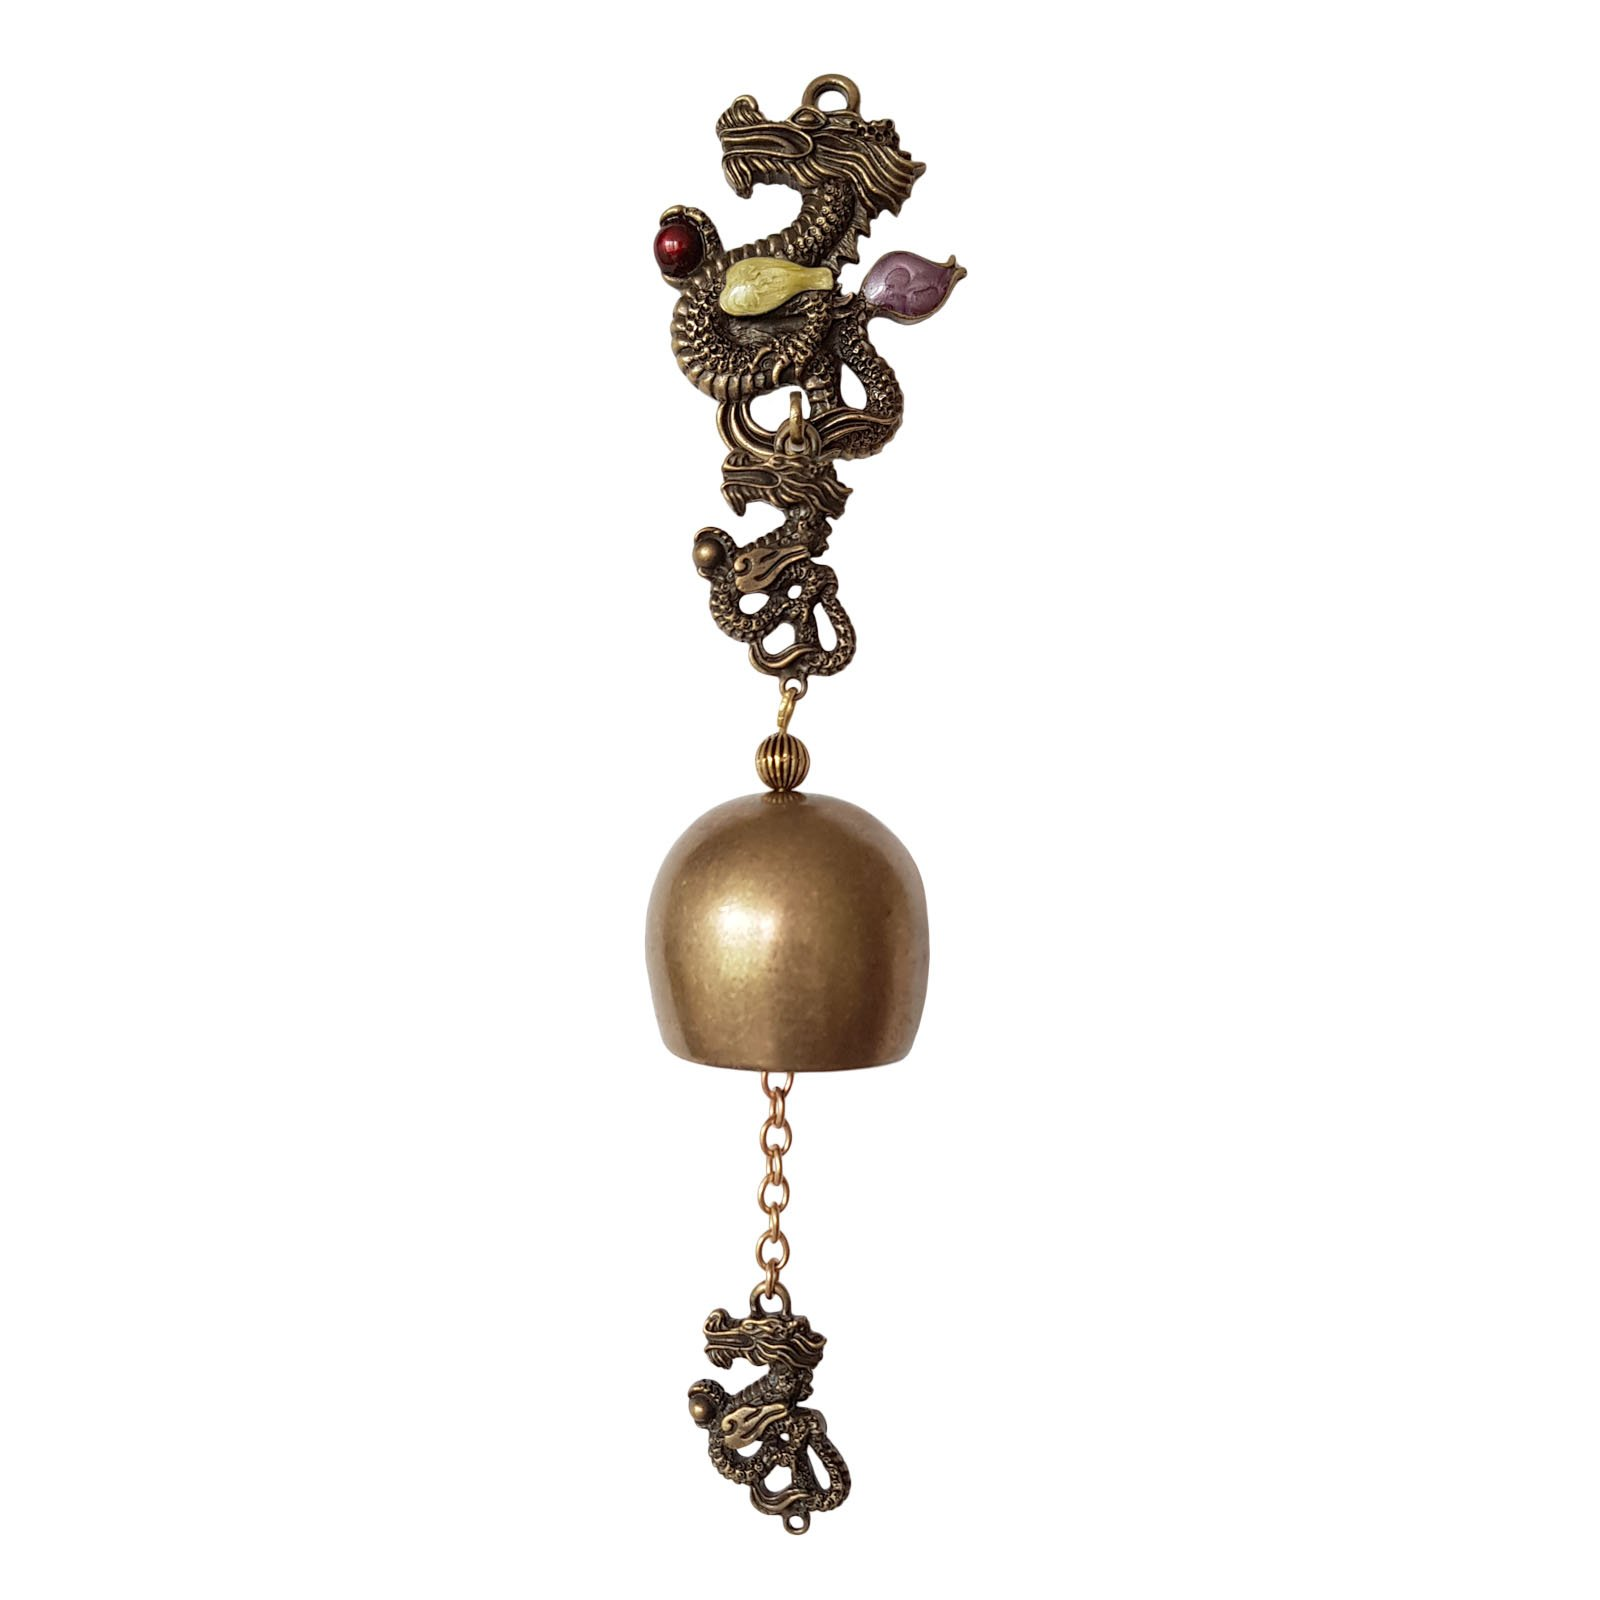 Vintage Dragon Shopkeepers Door Bell Store Entry Door Chime Home Decorative Bell (One bell)